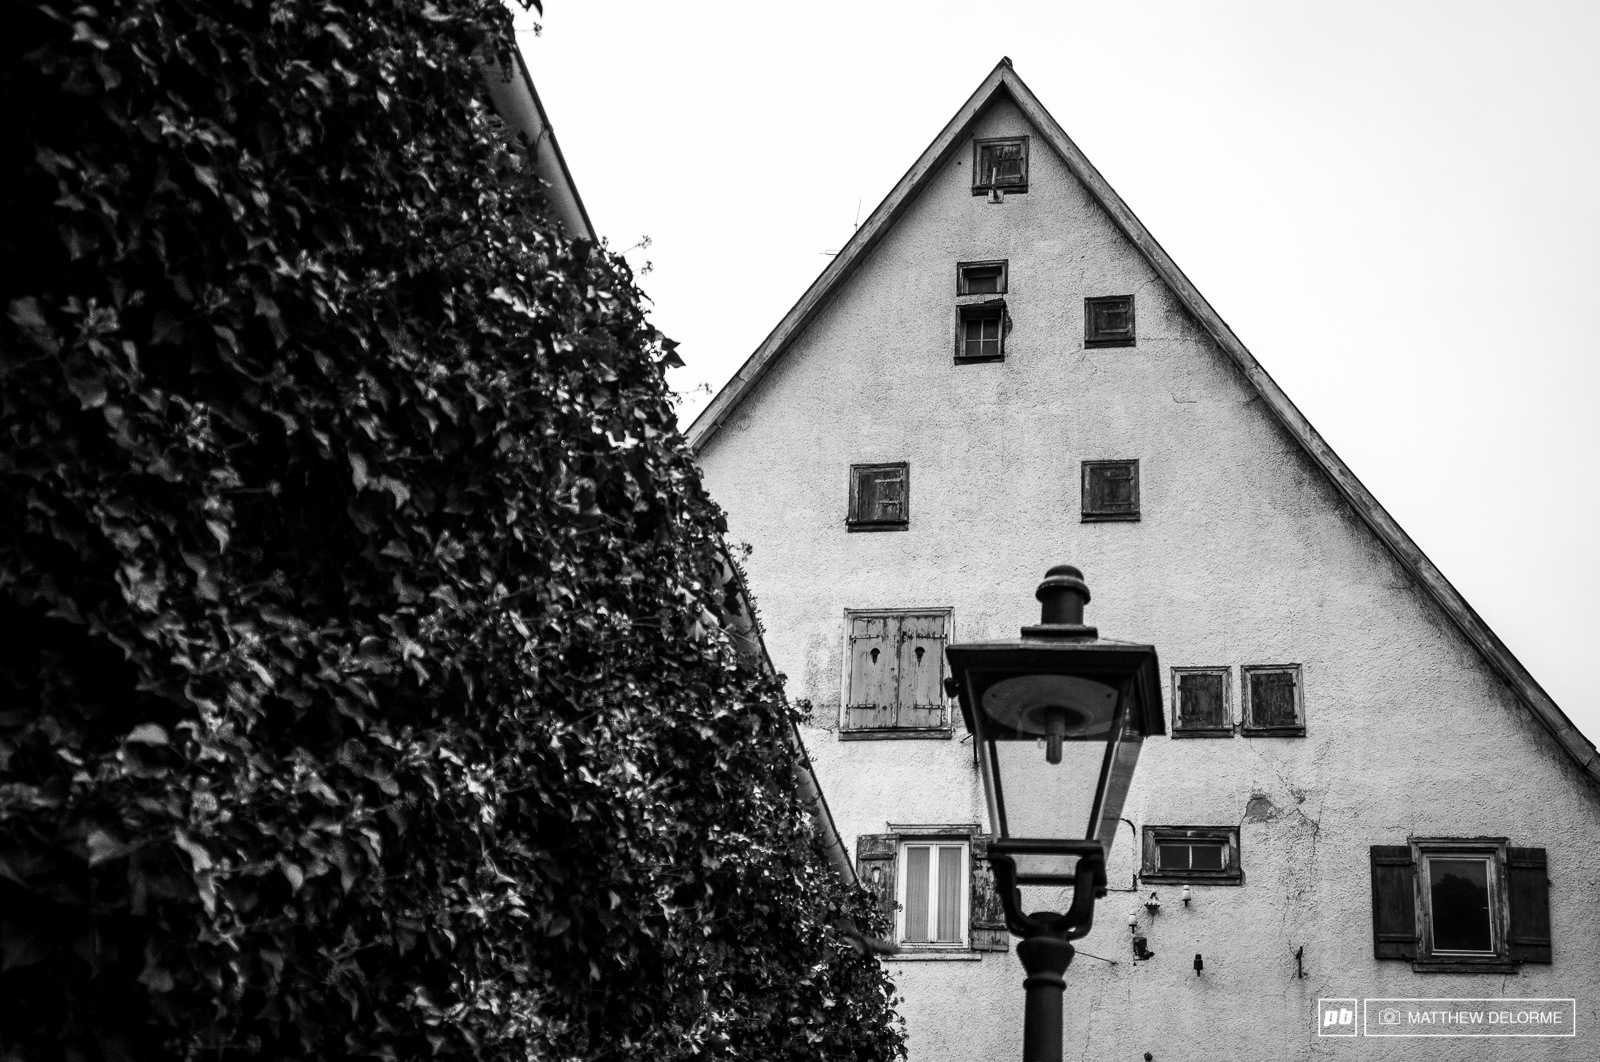 The side streets of Albstadt transport you to another time. Perhaps one where you are lured into a pointy roofed house by a lady with candy who might roast you in a wood fired oven.